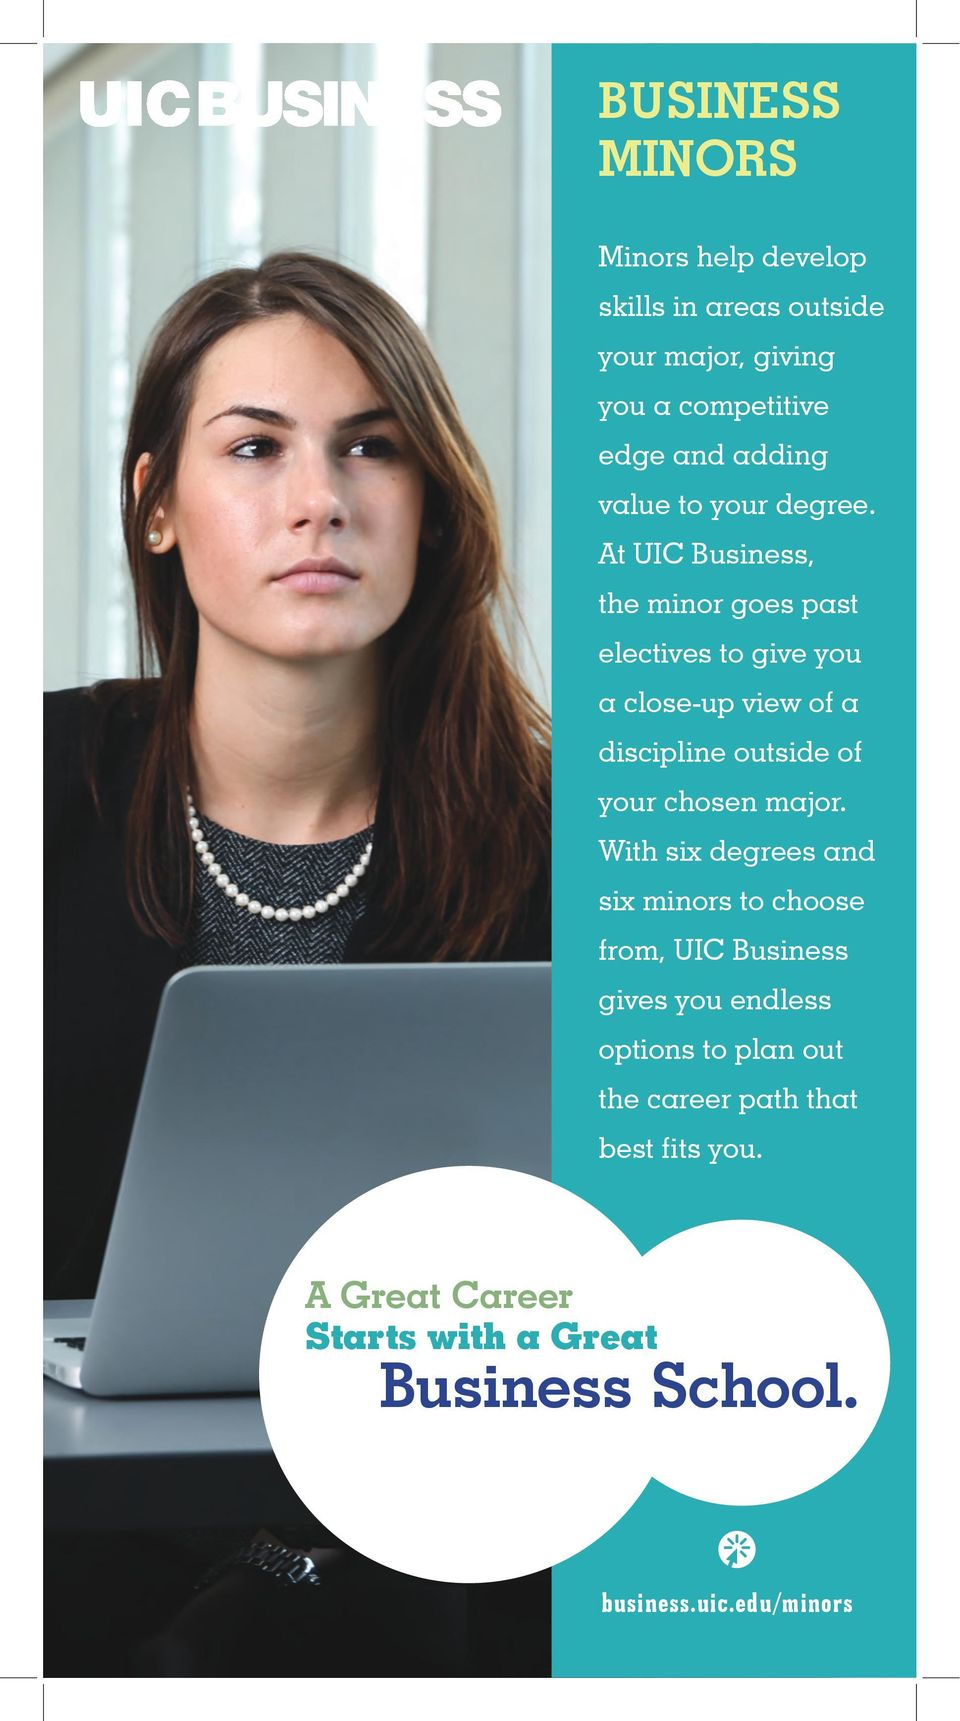 At UIC Business, the minor goes past electives to give you a close-up view of a discipline outside of your chosen